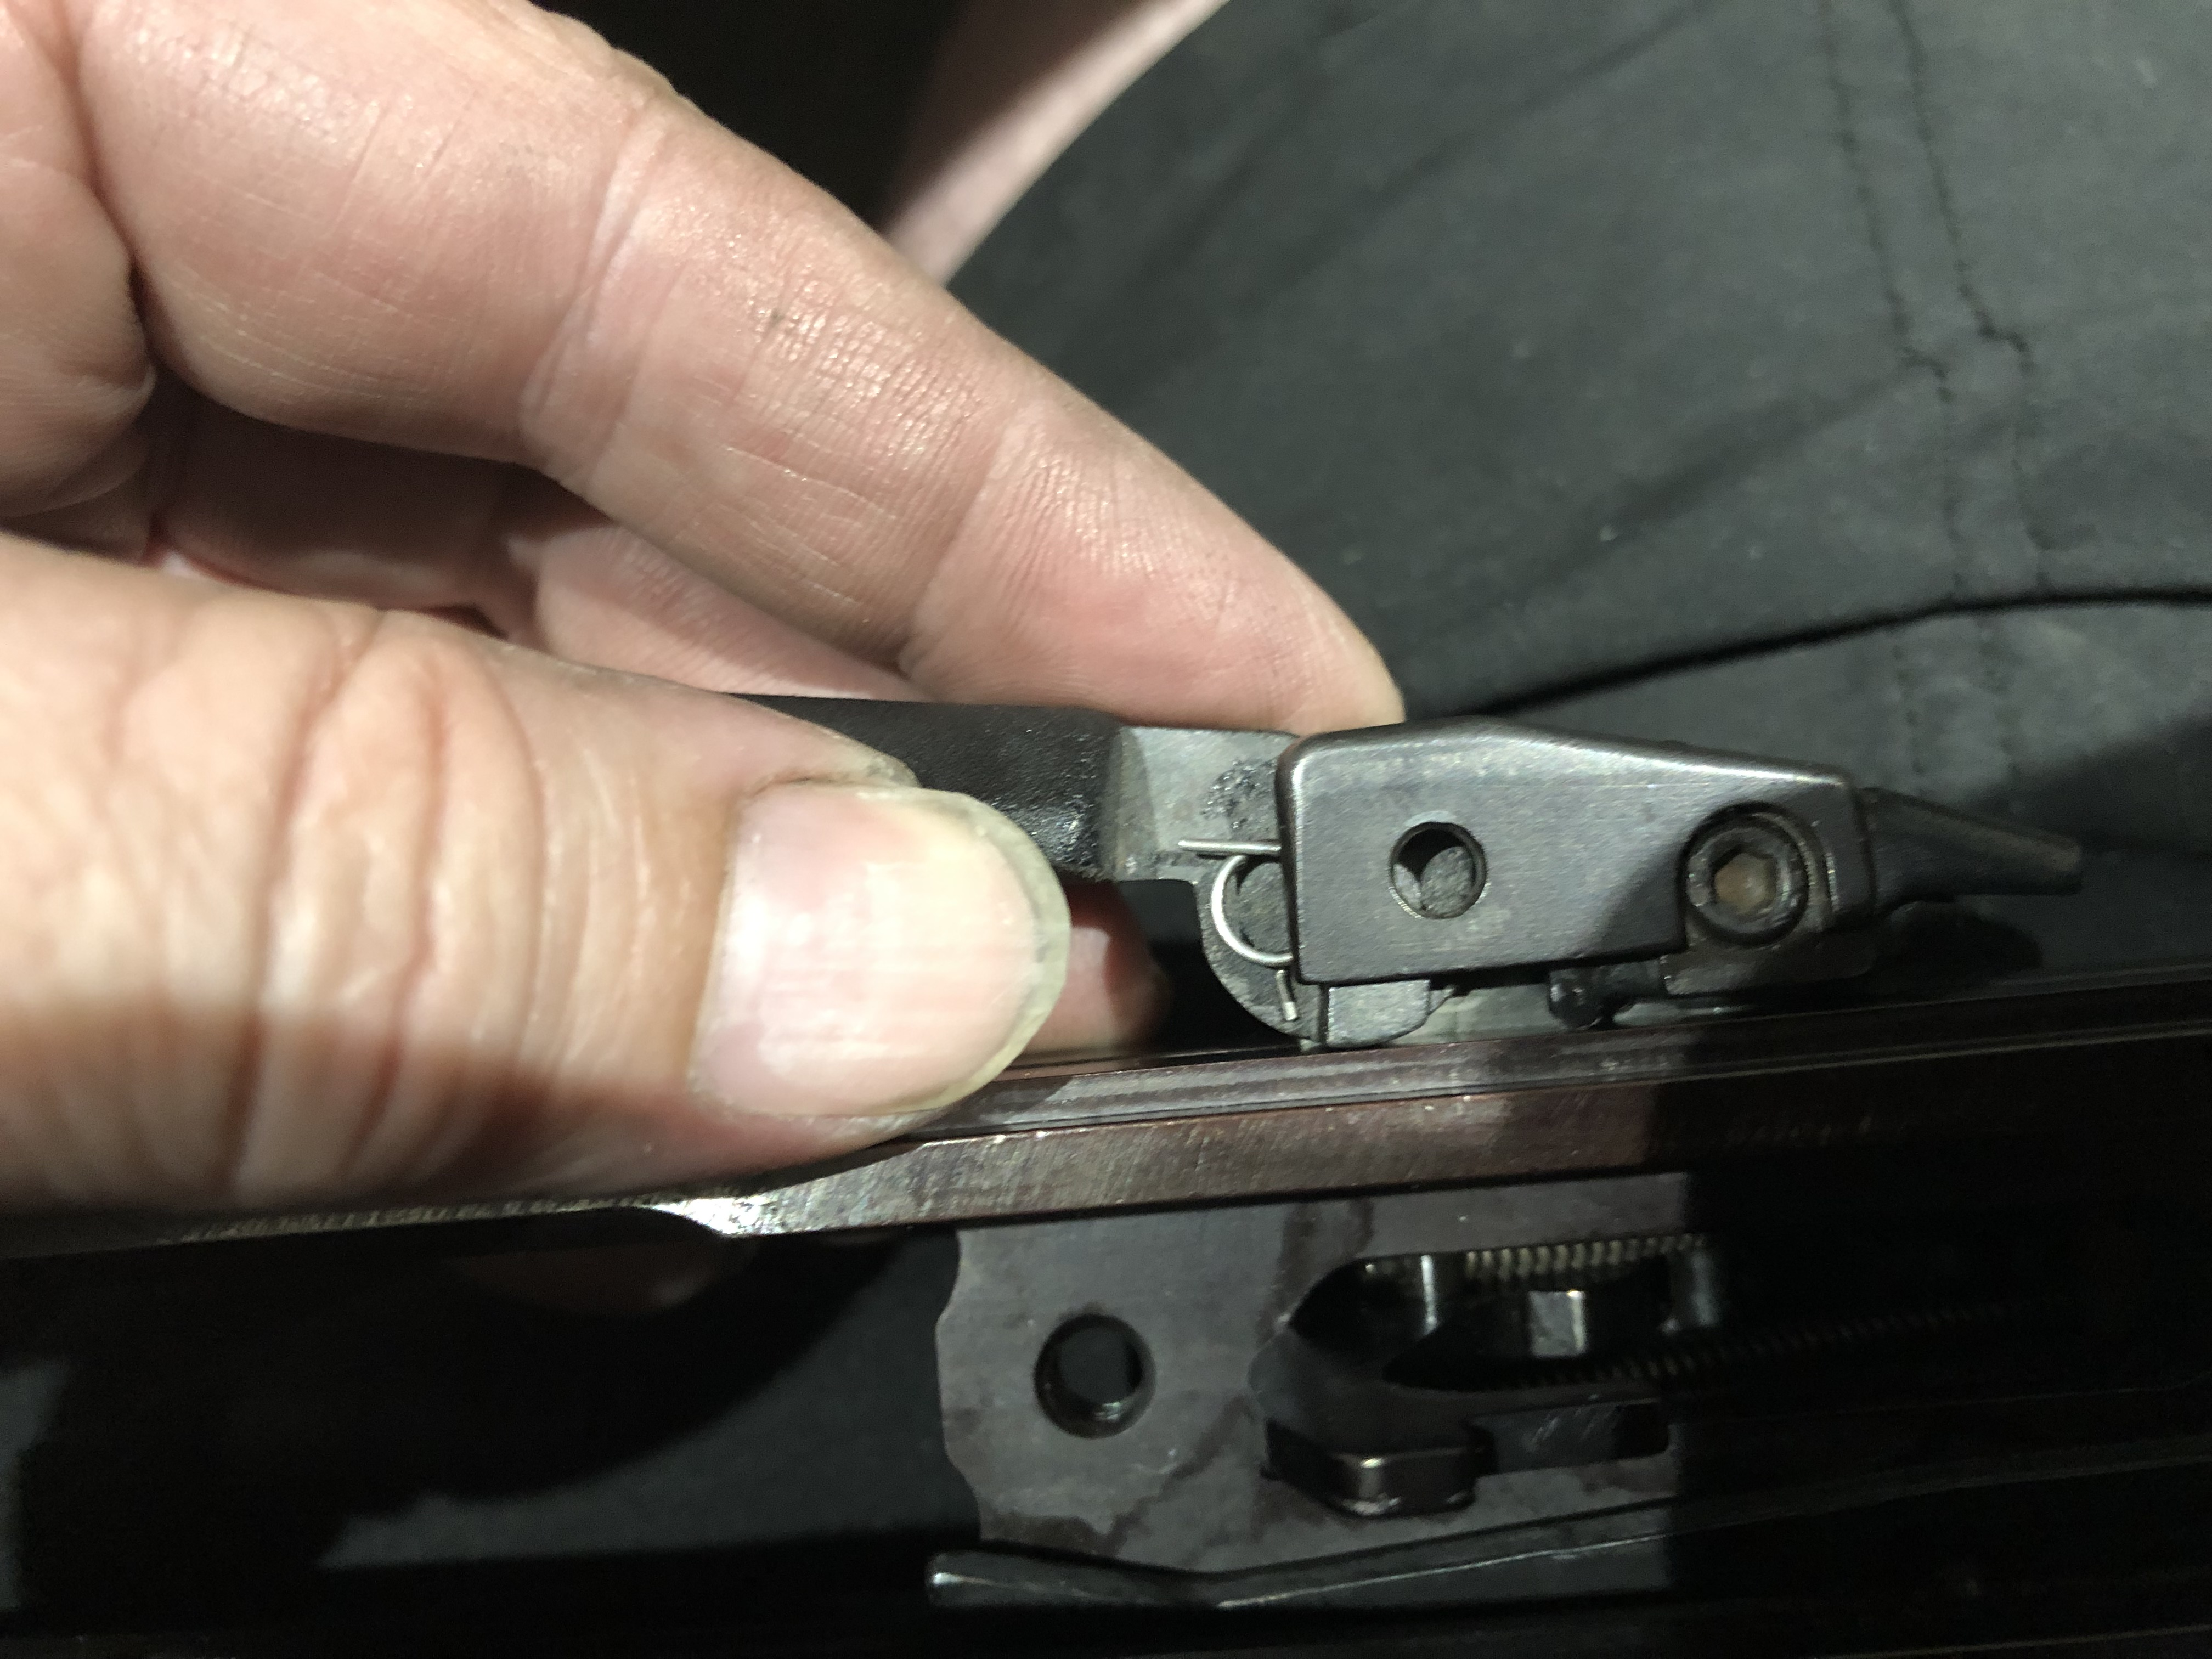 HK 630, 770, 940 - Cocking Lever (Charging Handle) Removal and Replacement-17.jpg